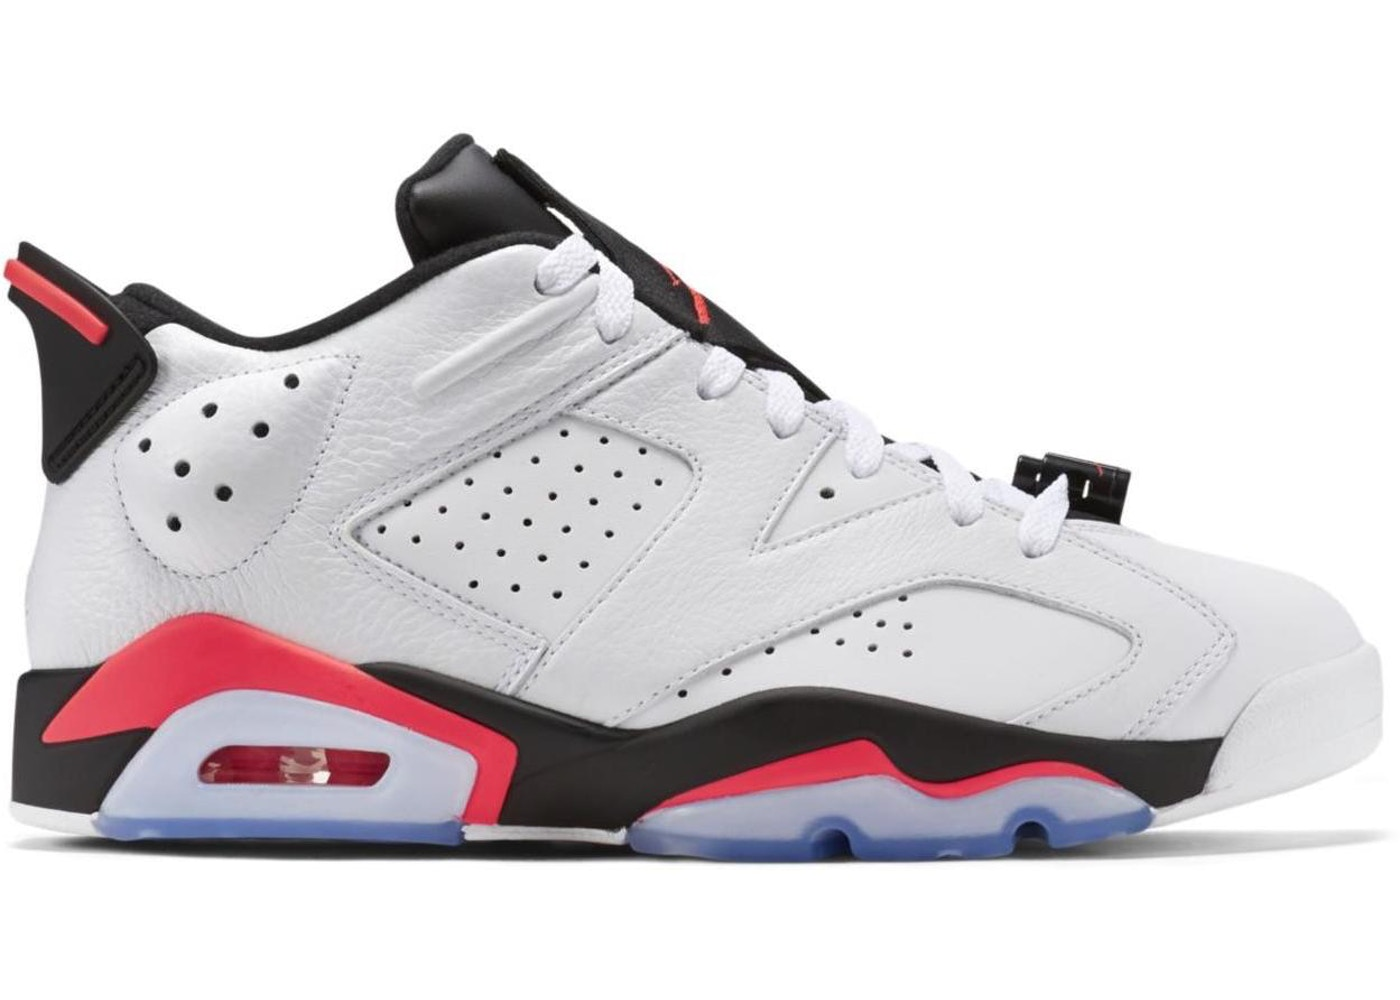 huge discount cb834 f9a63 Jordan 6 Retro Low Infrared White